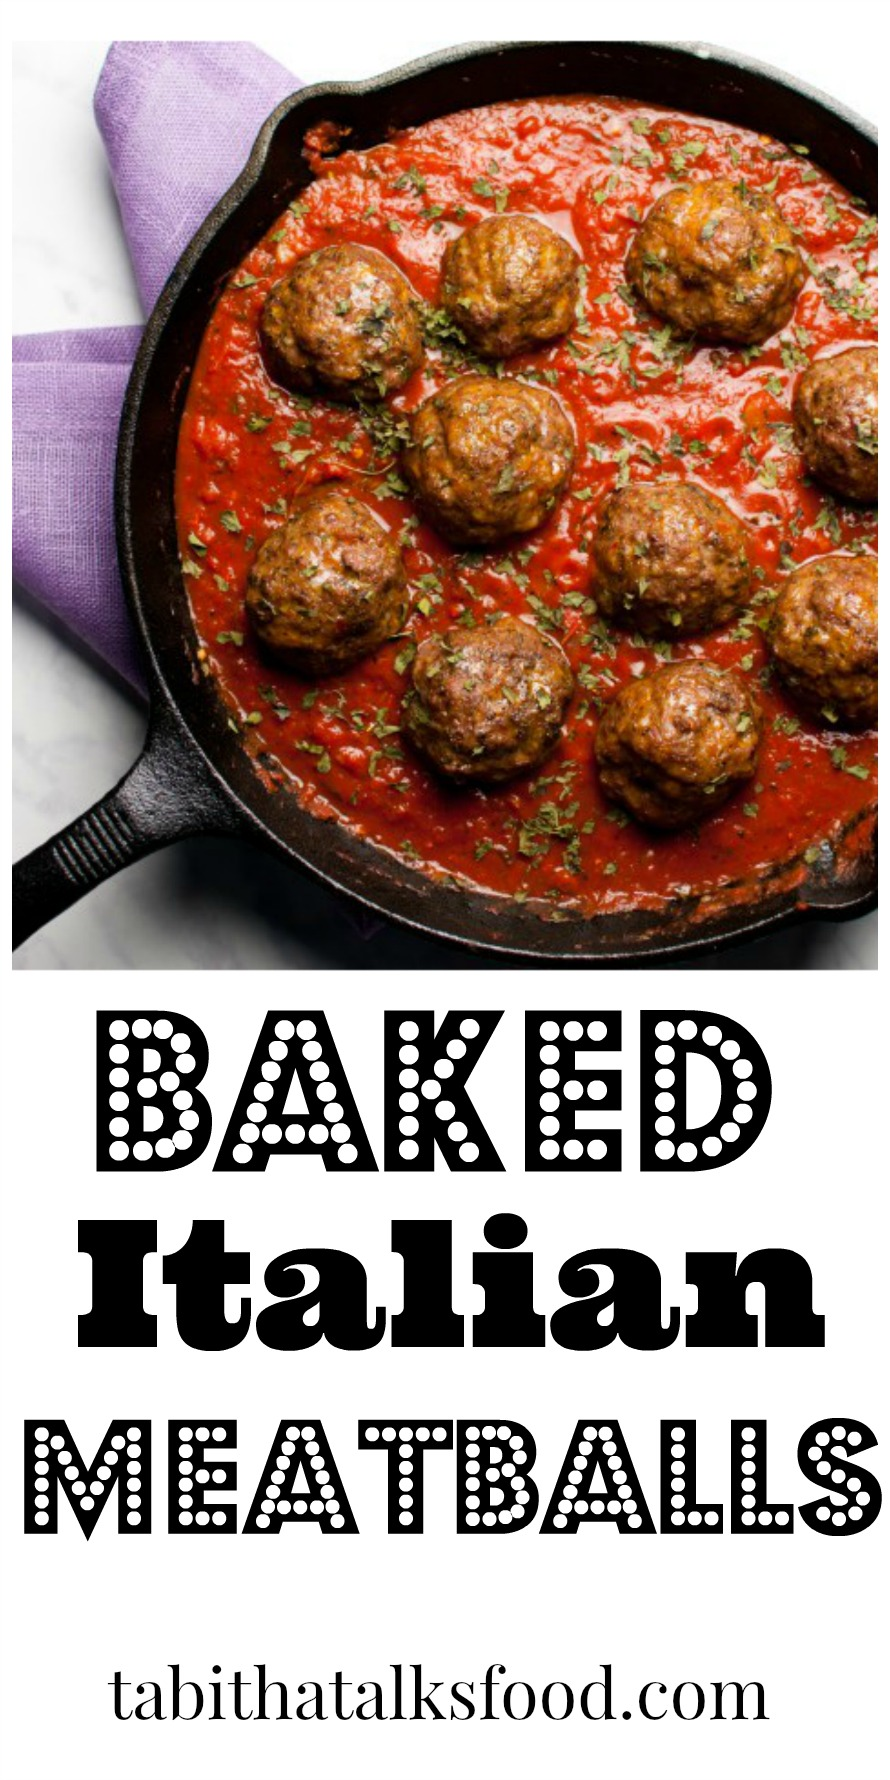 Place mince, breadcrumbs, egg, parmesan, oregano and basil in a large bowl. Mix well to combine. Shape mixture into 12 balls. Add pasta sauce. Bring to the boil. Scatter with cheese. Bake, uncovered, for 15 to 20 minutes or until meatballs are cooked through. Top meatballs with extra basil leaves.